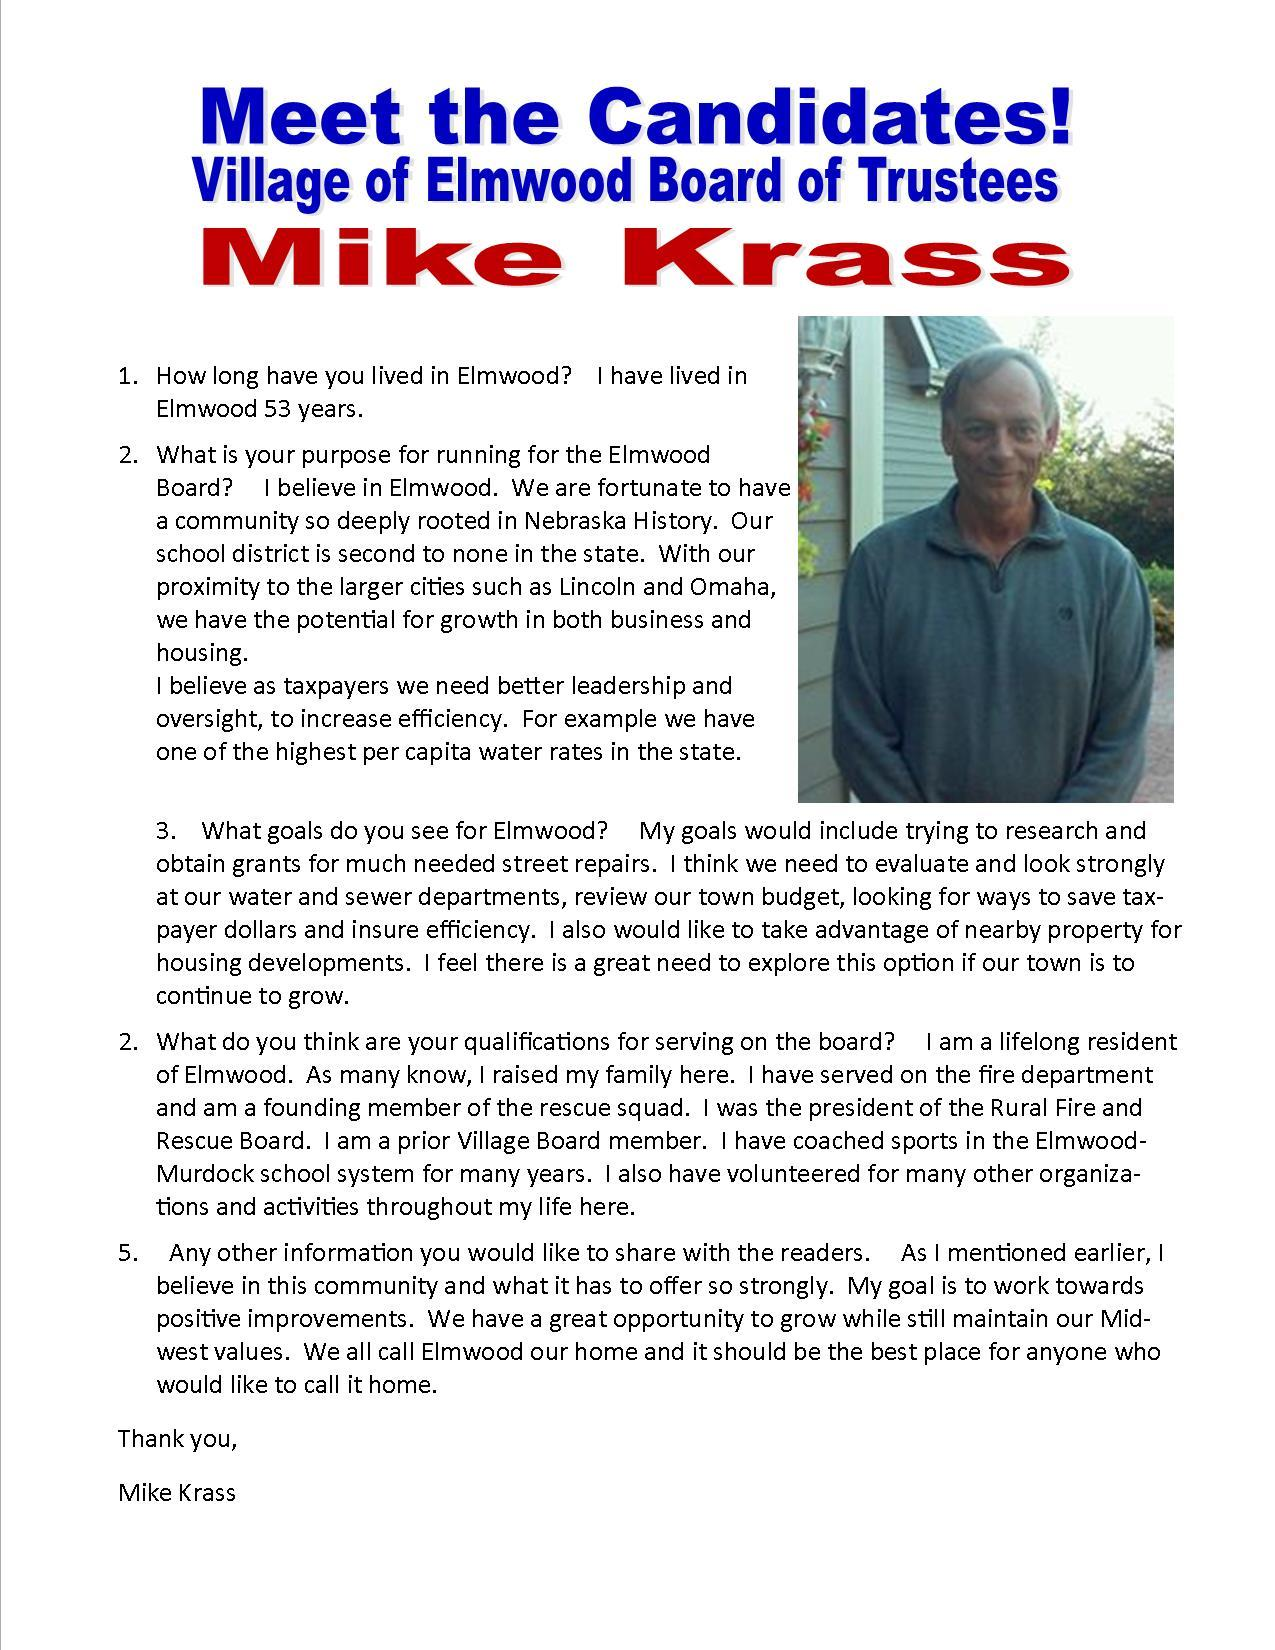 Mike Krass for nl